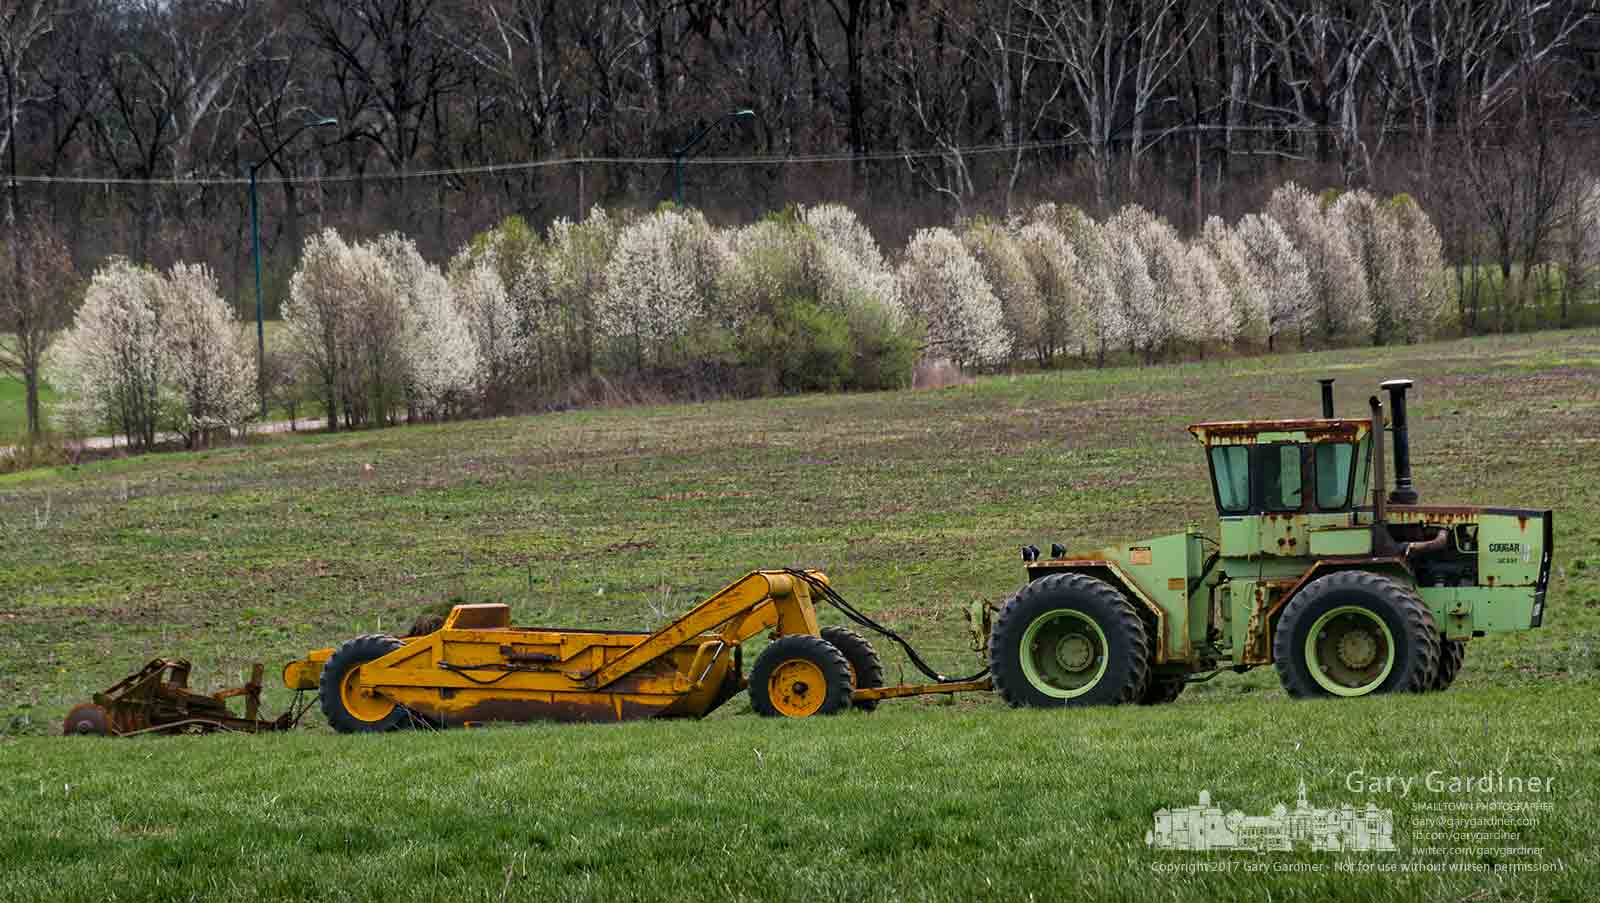 Wild pear tree blossoms line the roadway at the edge of the Braun Farm property where a heavy duty tractor sits waiting for warmer and drier weather to begin spring planting. My Final Photo for April 3, 2017.